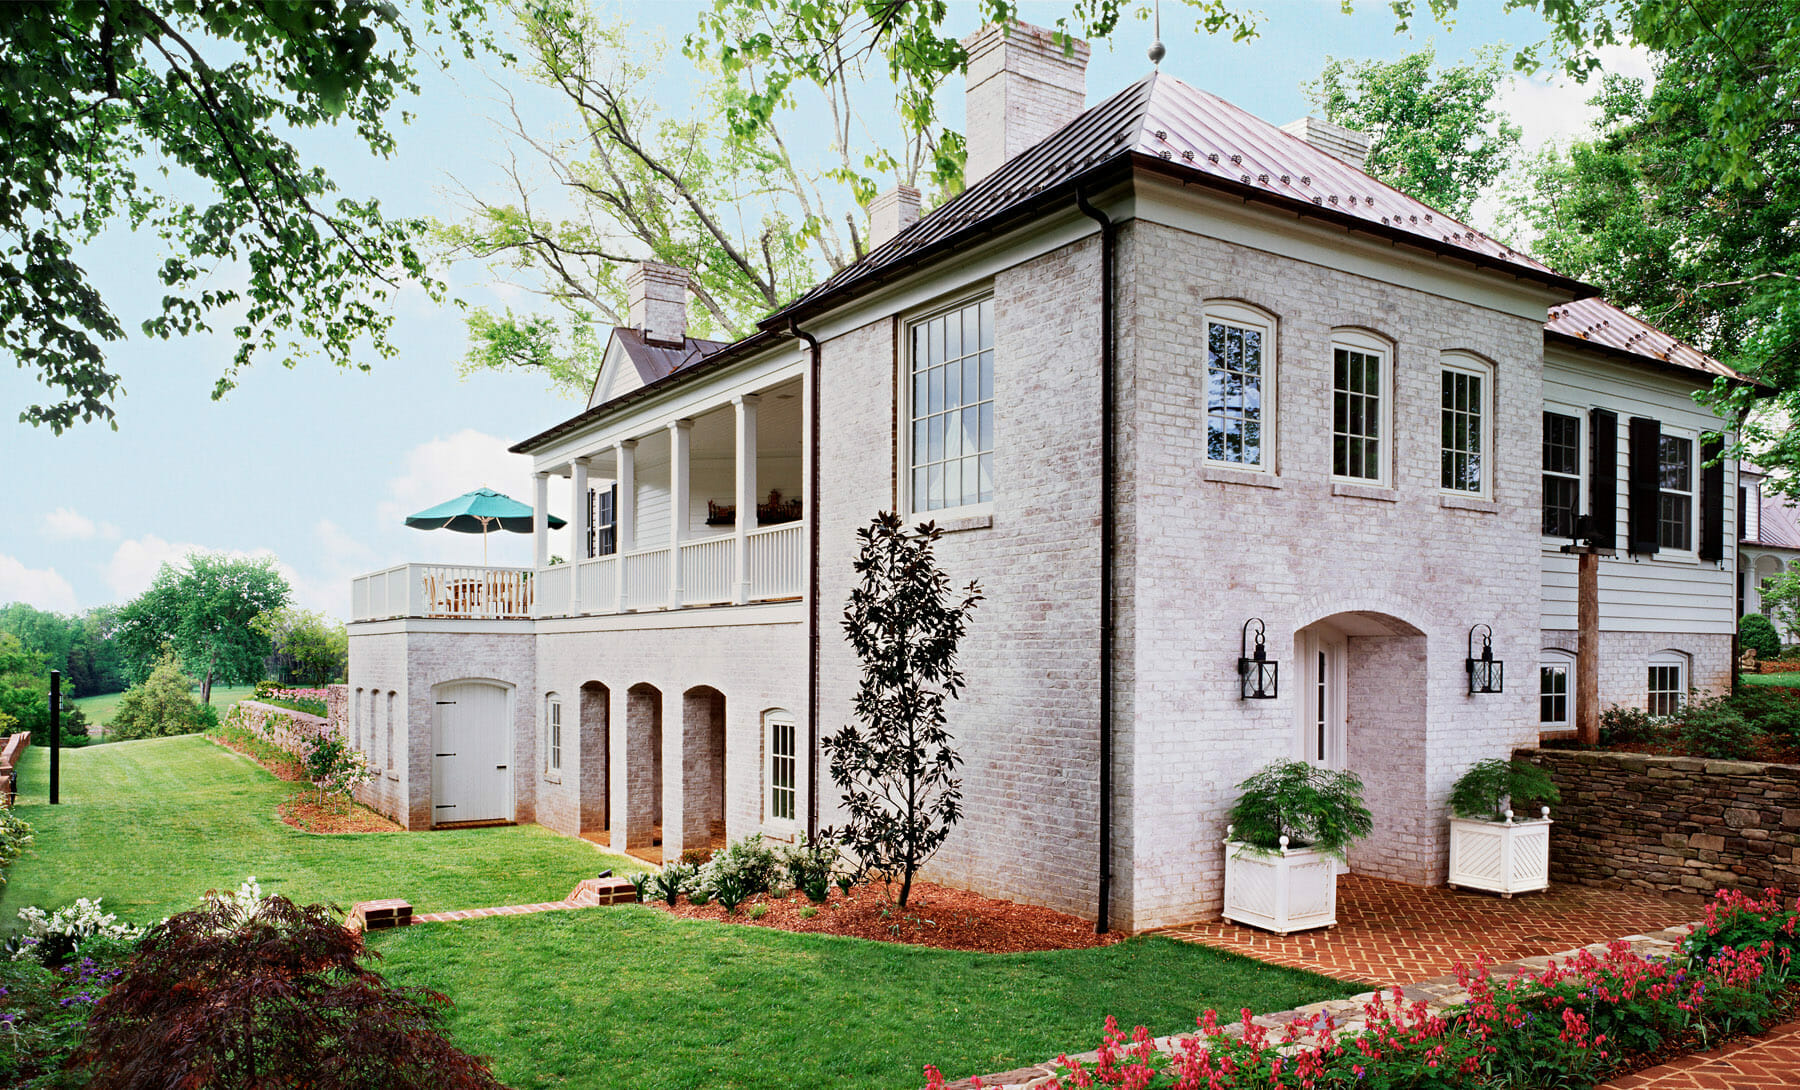 Exterior home construction done by Gibson, Magerfield, Edenali in Albemarle County, Virginia